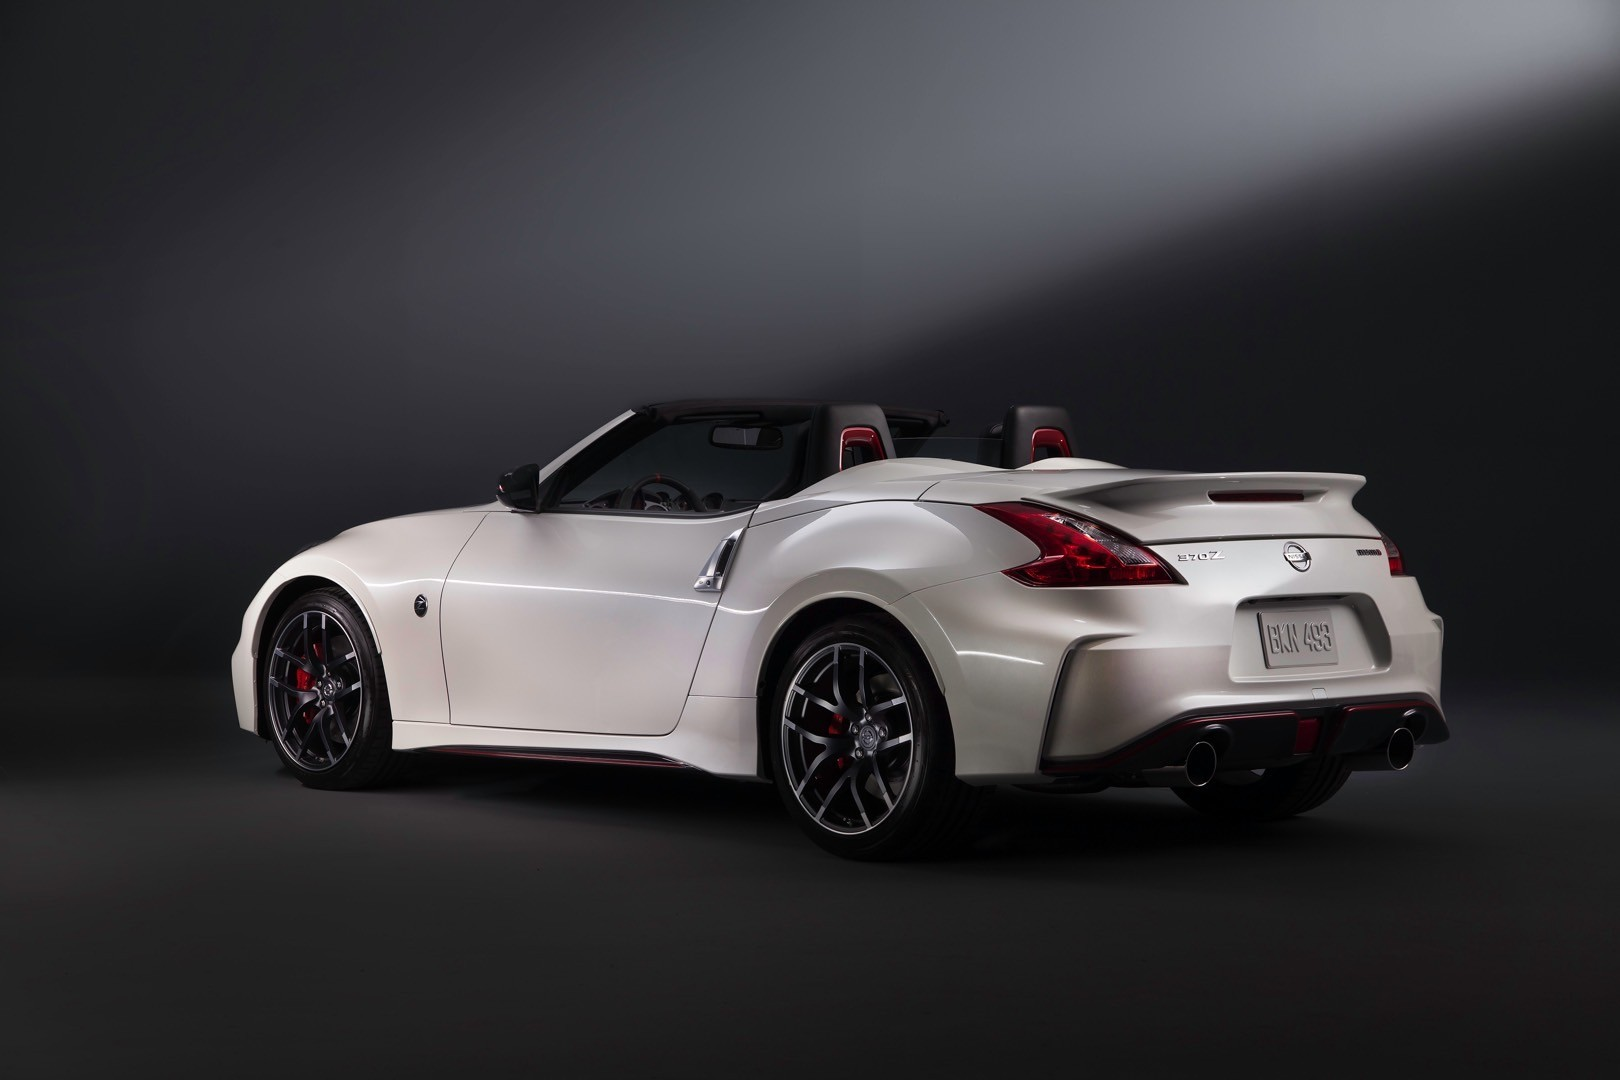 nissan 370z nismo roadster concept launched at 2015 chicago auto